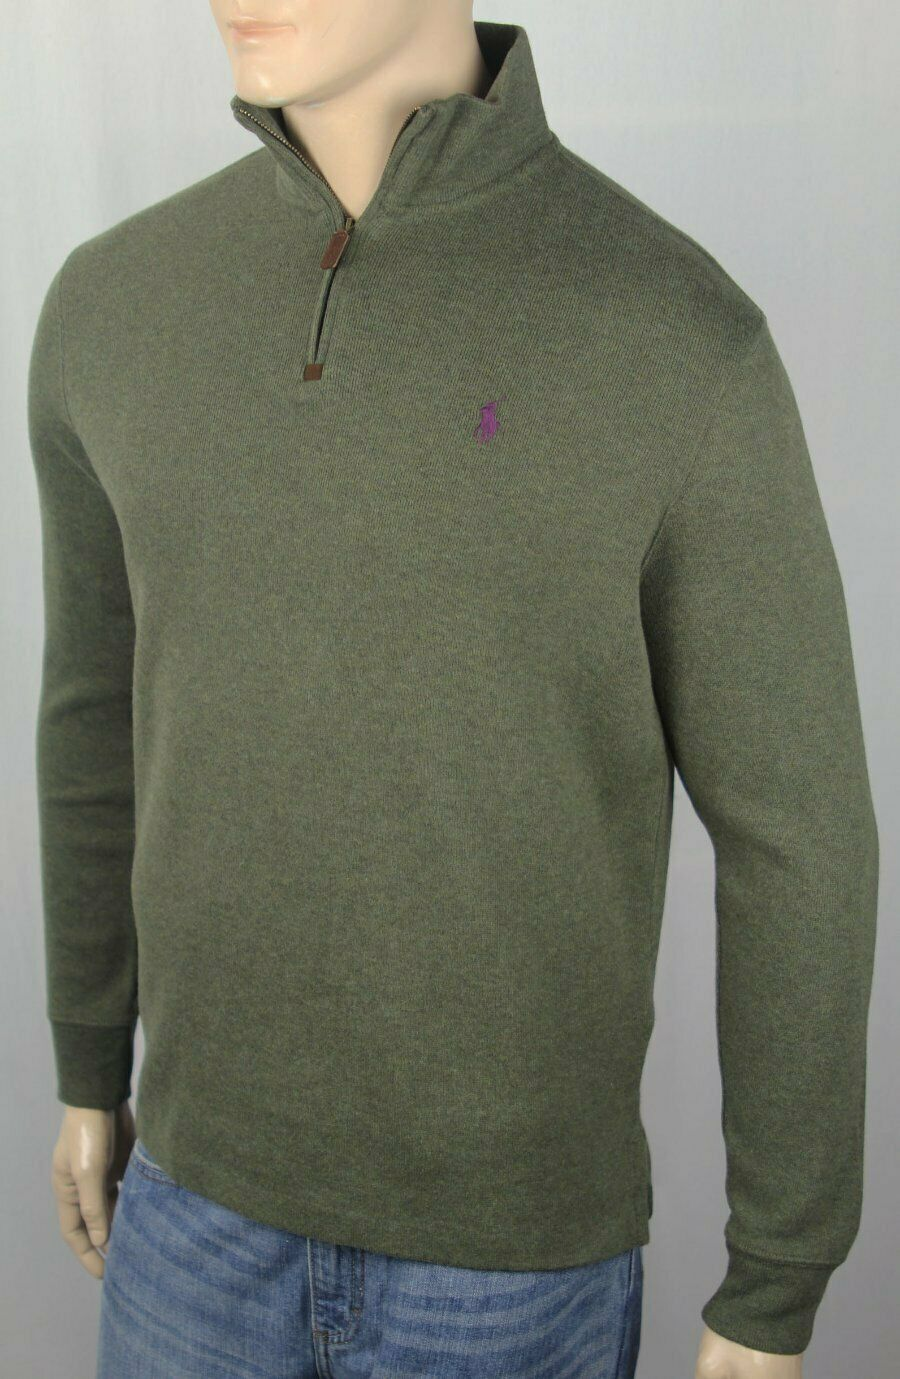 Polo Ralph Lauren Olive Green 1 2 Half Zip Sweater Plum Pony NWT